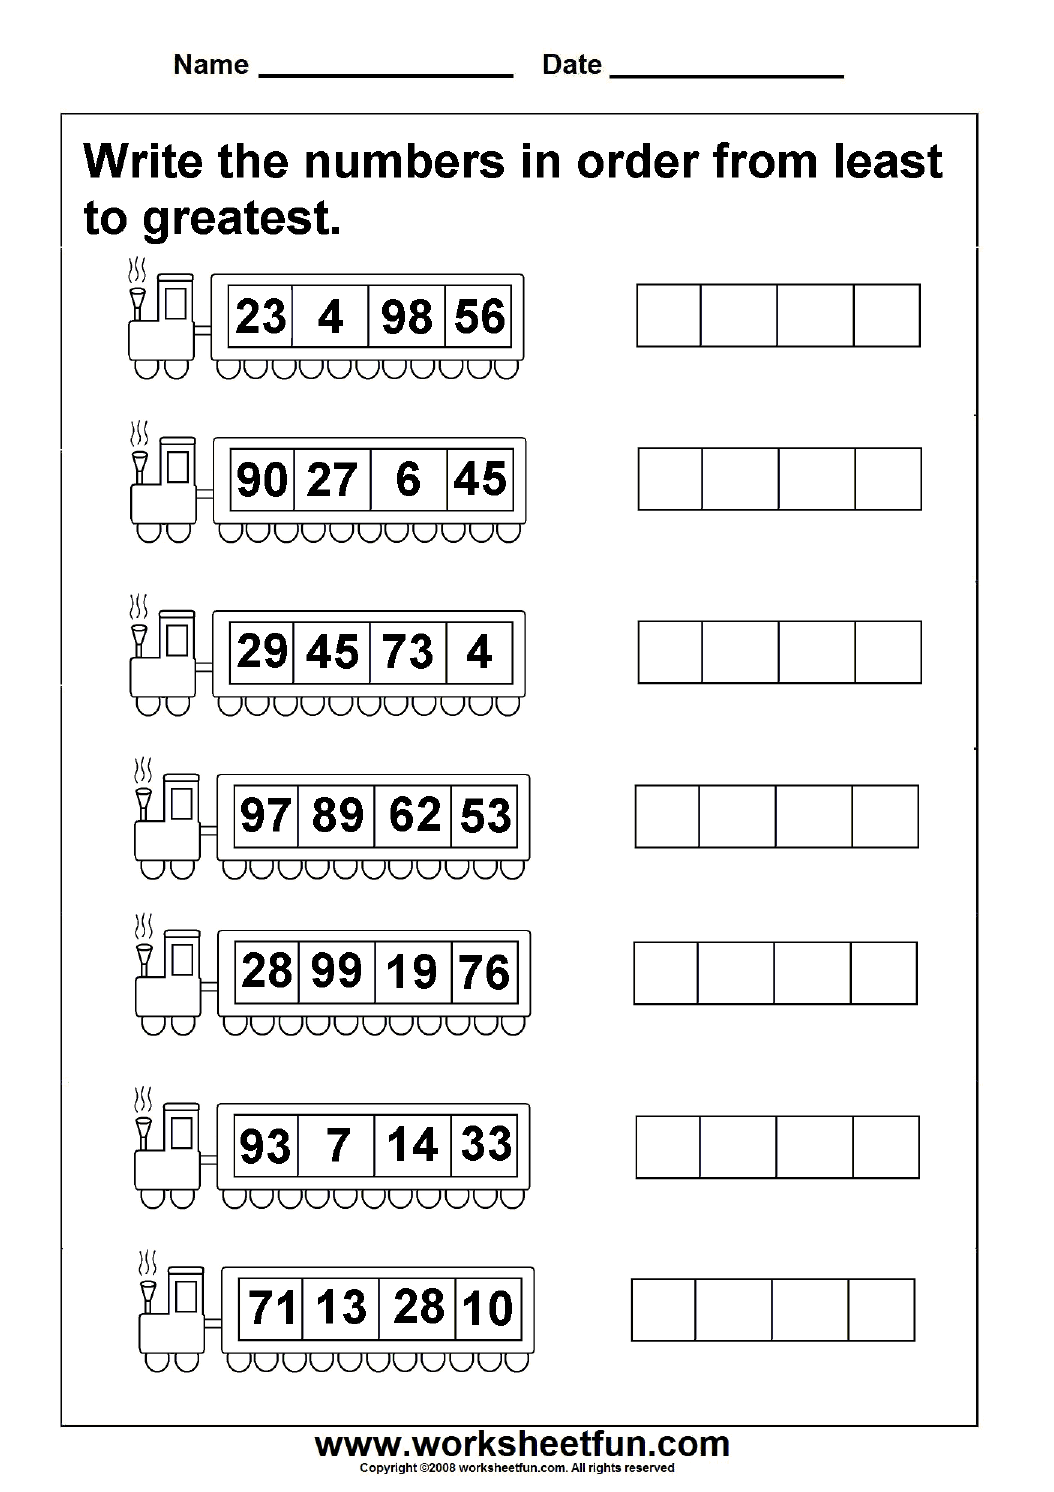 First Grade Math Worksheets Of Least To Greatest Numbers 4